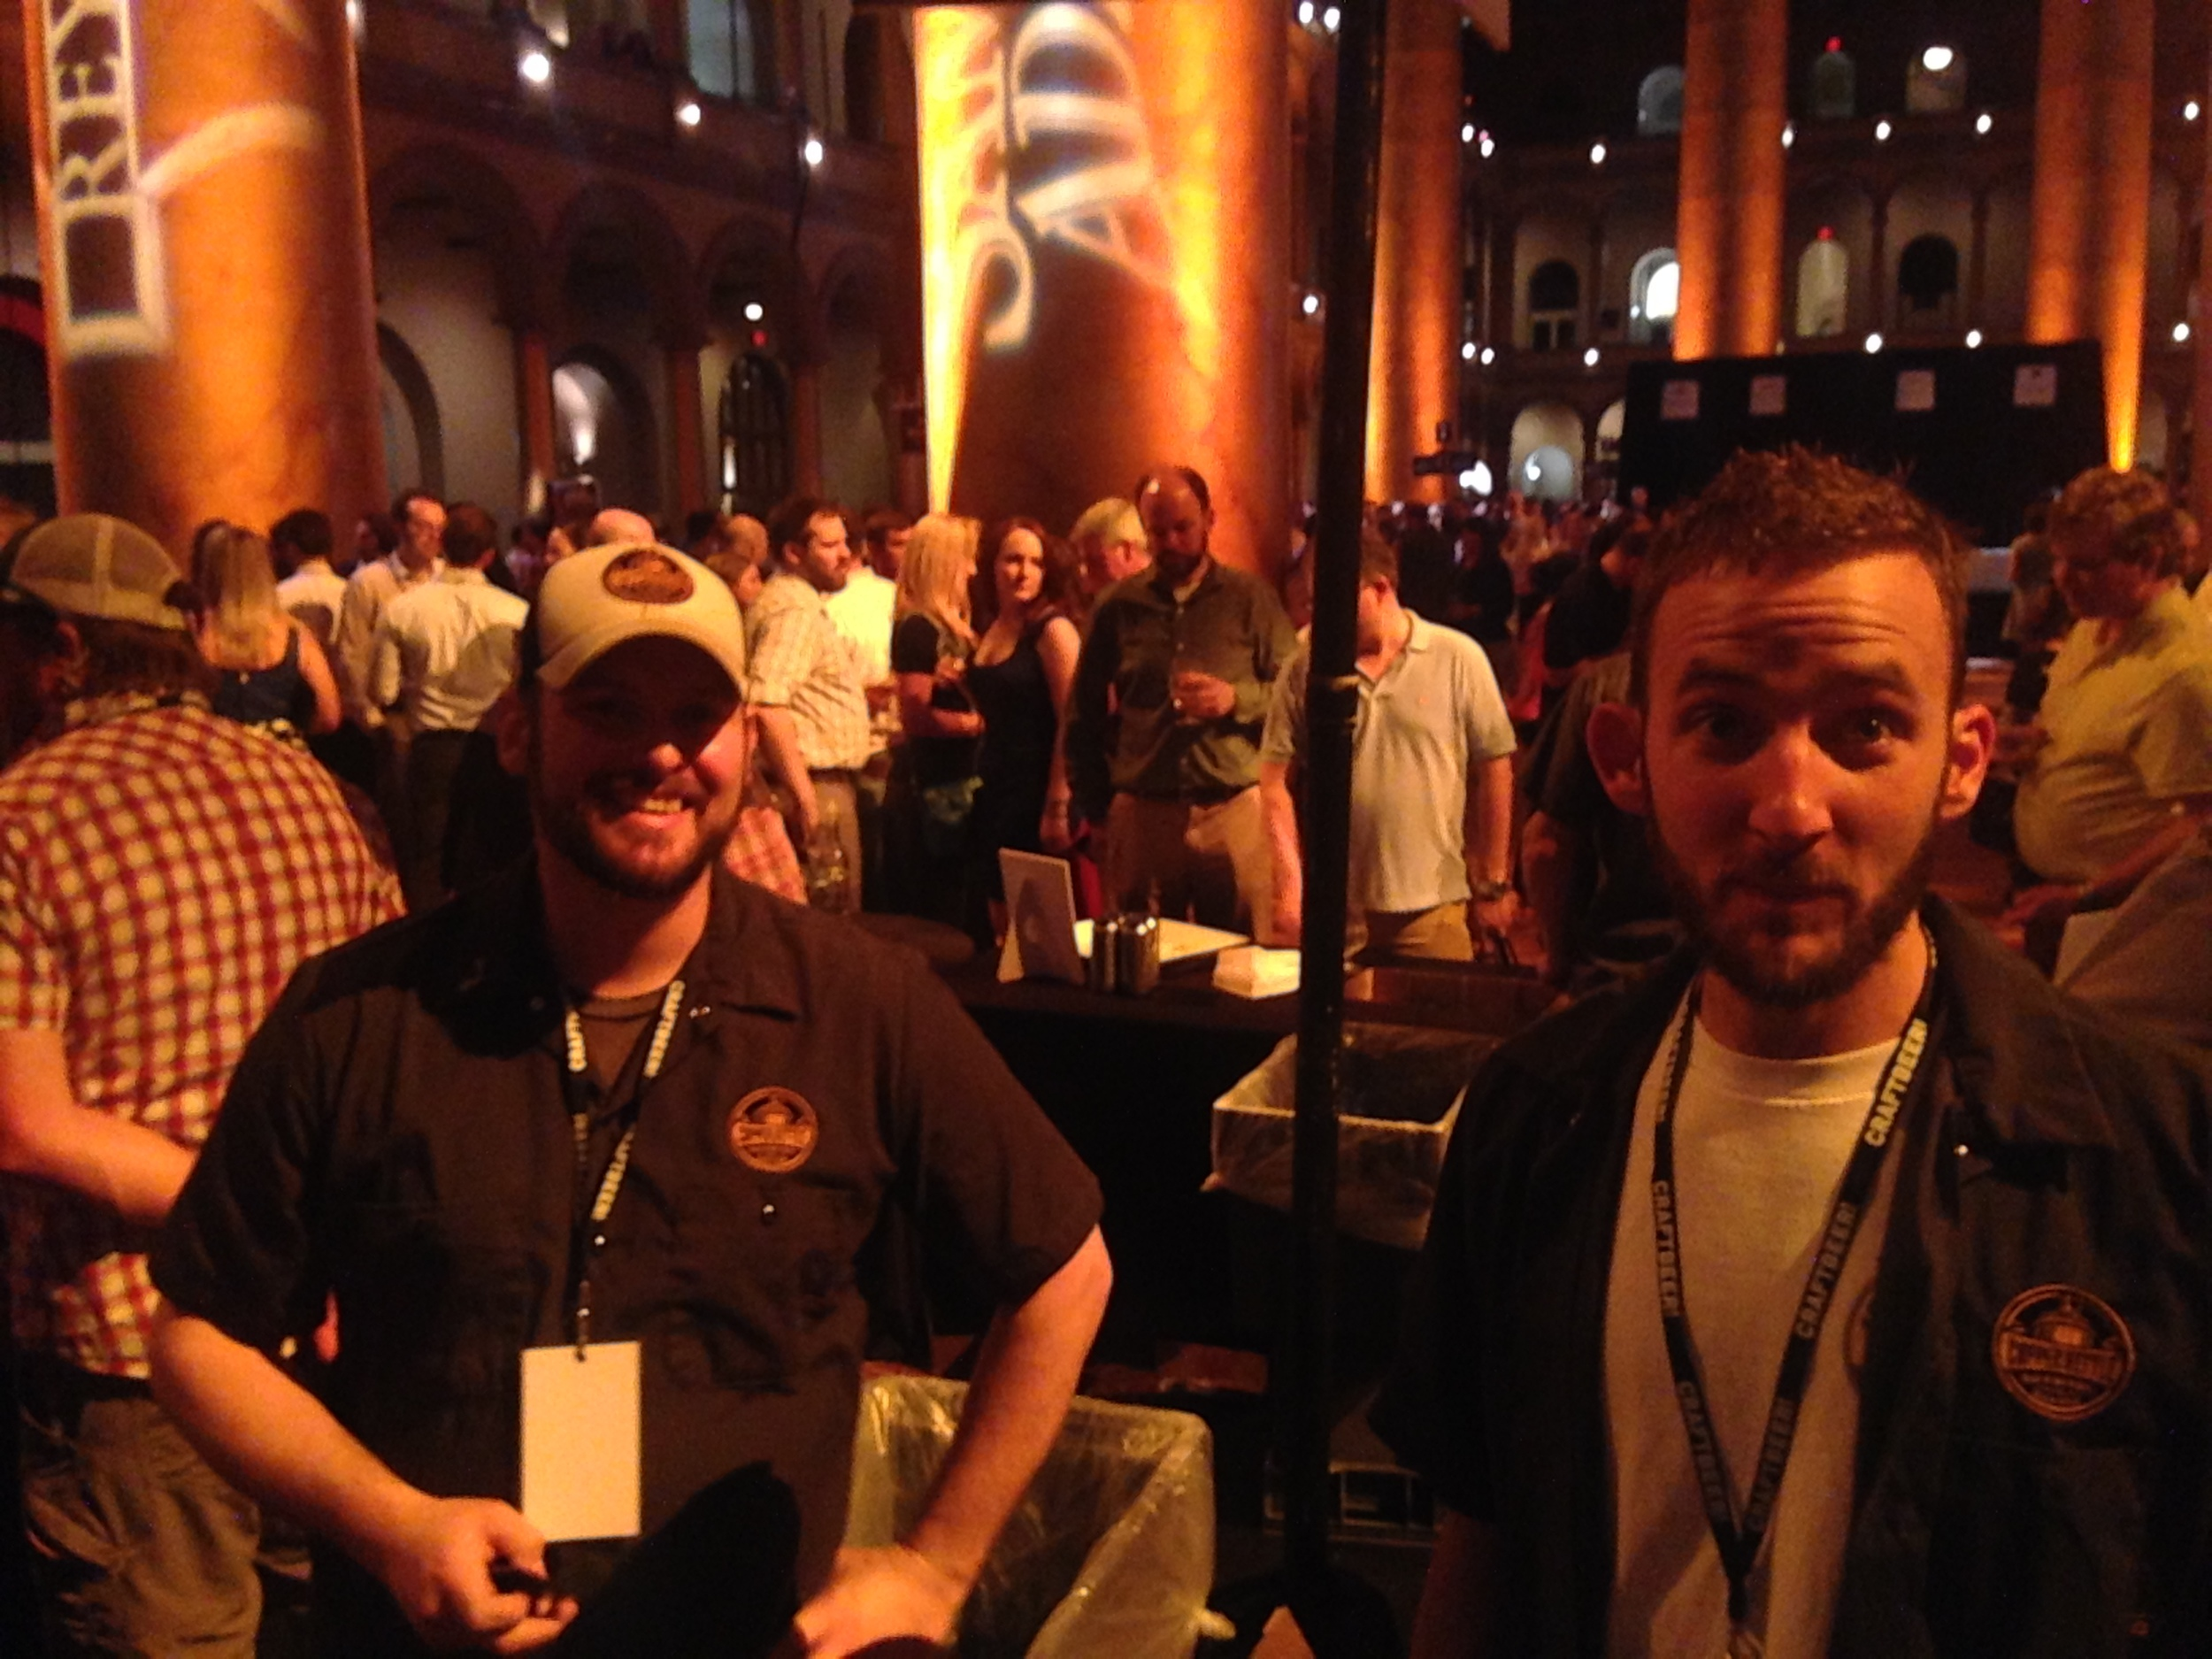 Awesome fellas from Copper Kettle Brewing out of Denver!